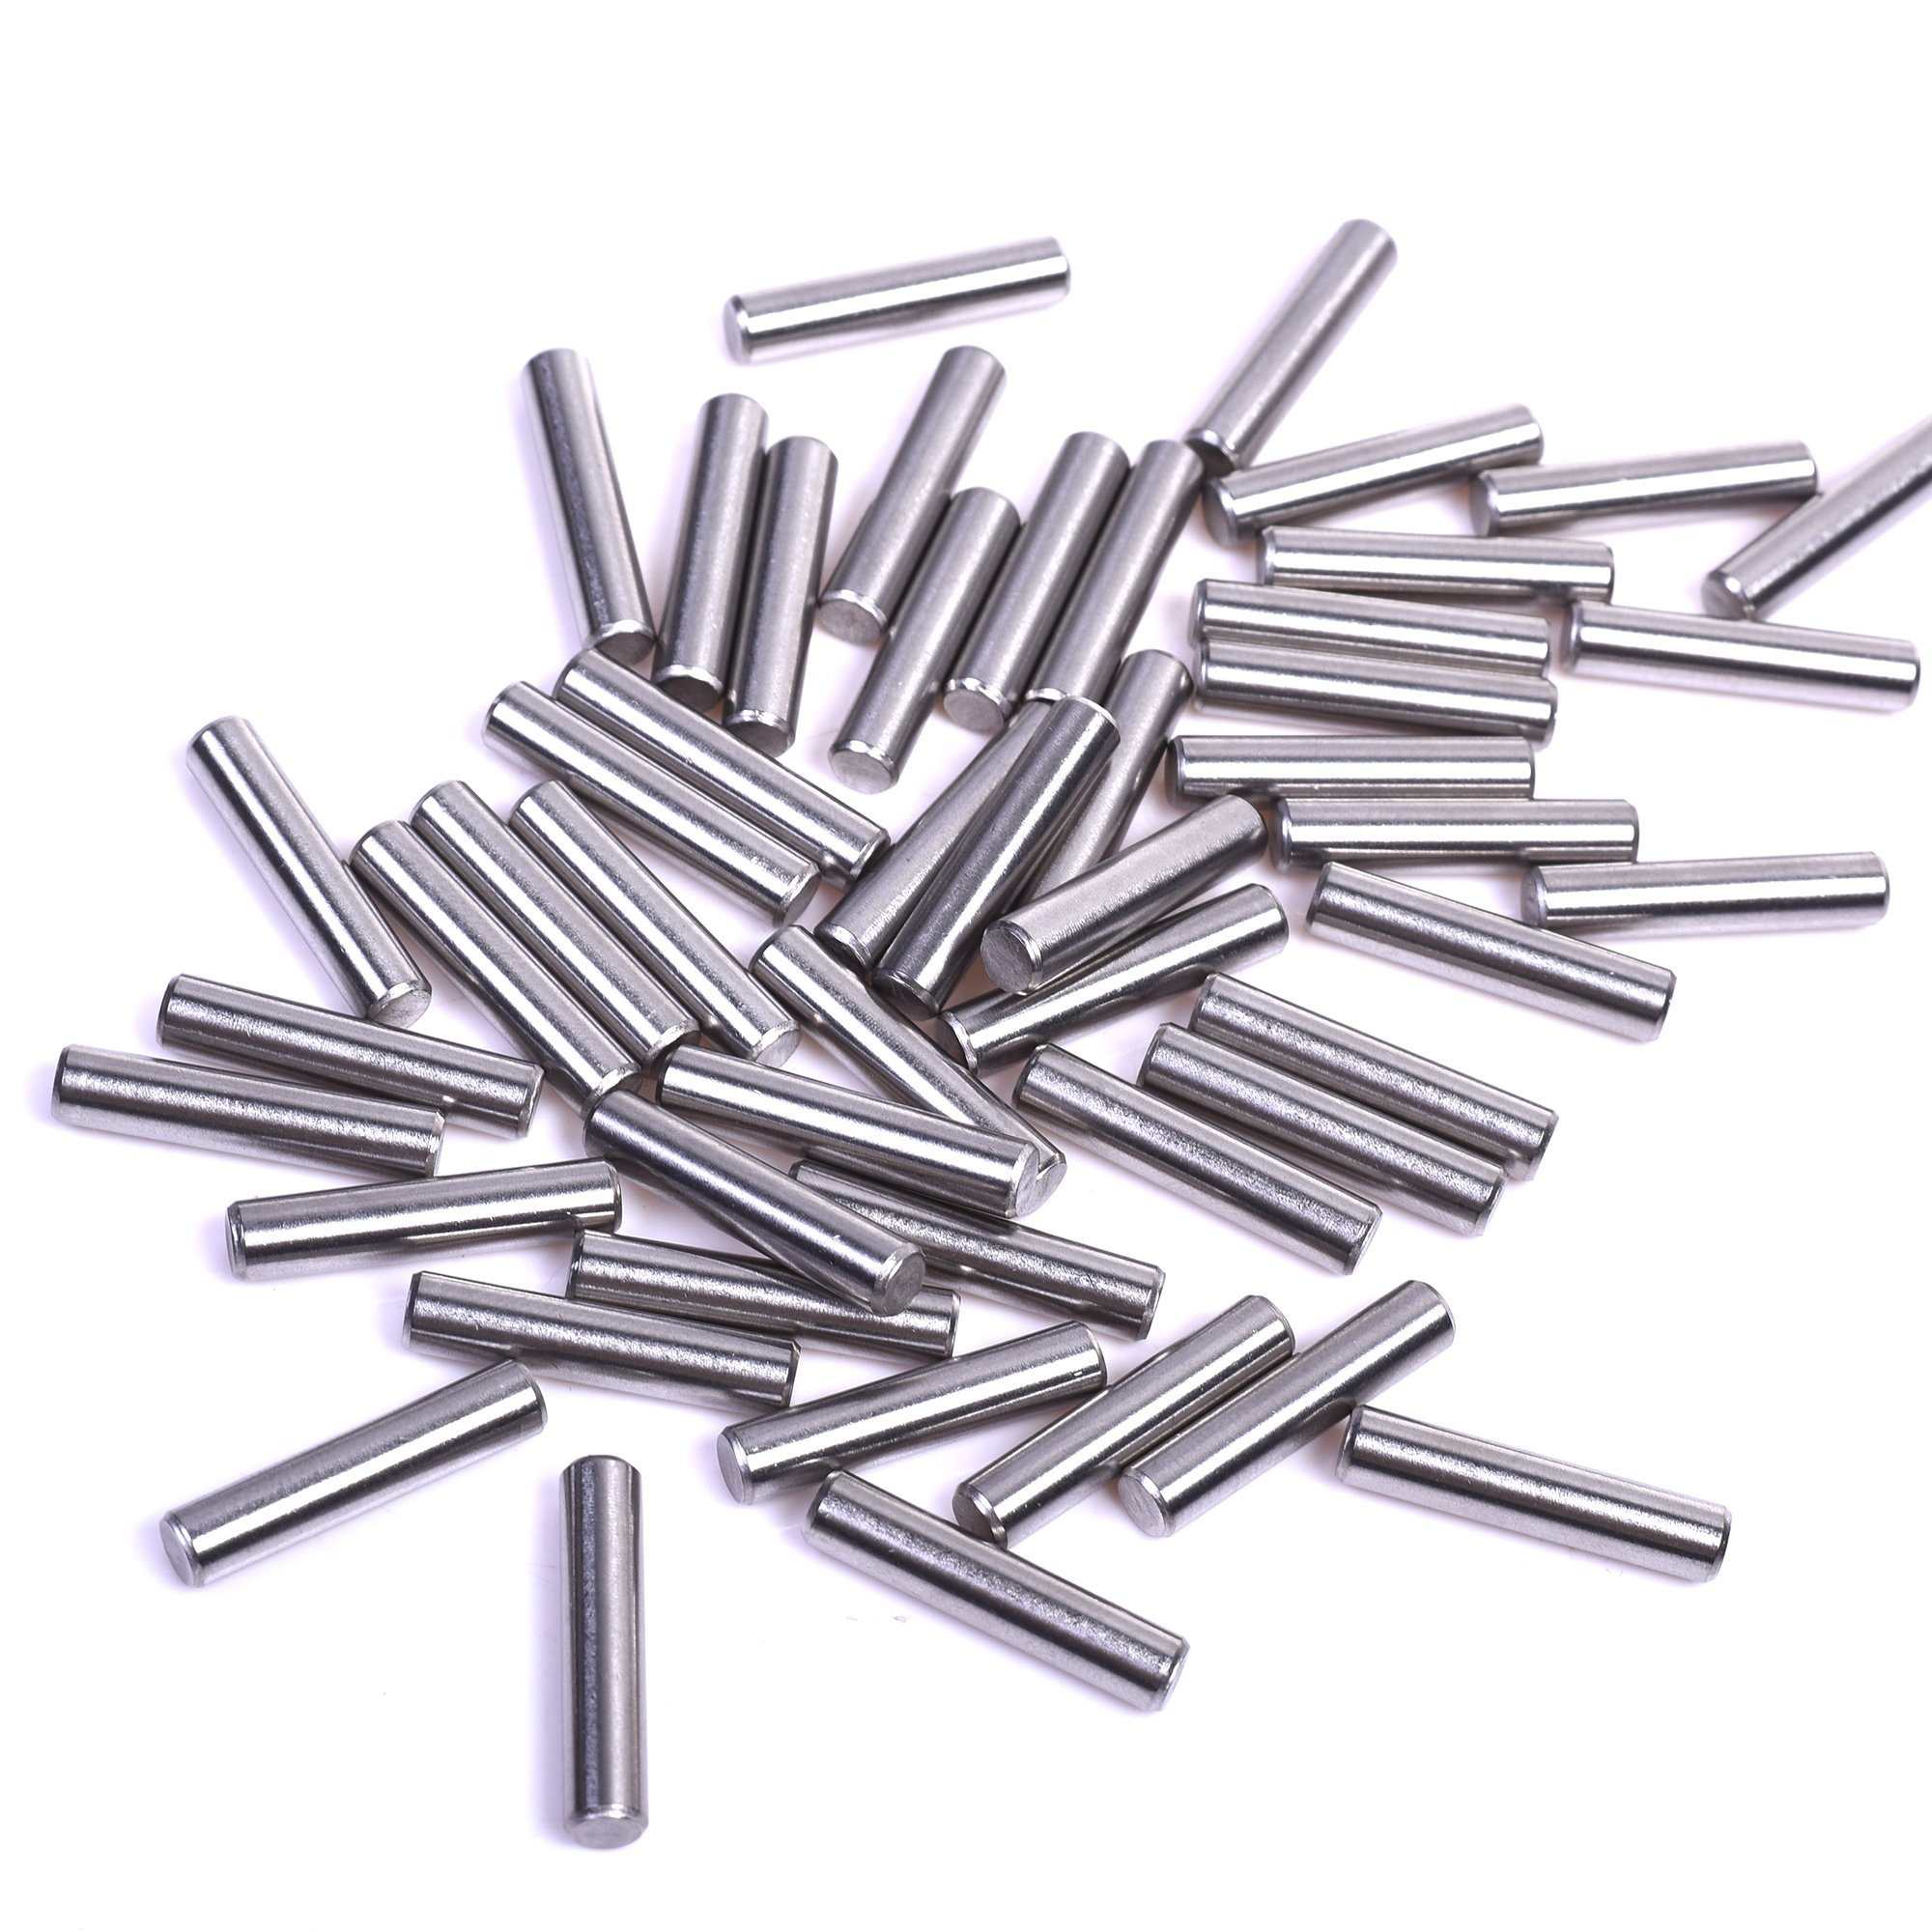 BCP 100 Pieces 5 mm x 24 mm Dowel Pin Stainless Steel Shelf Support Pin Fasten Elements